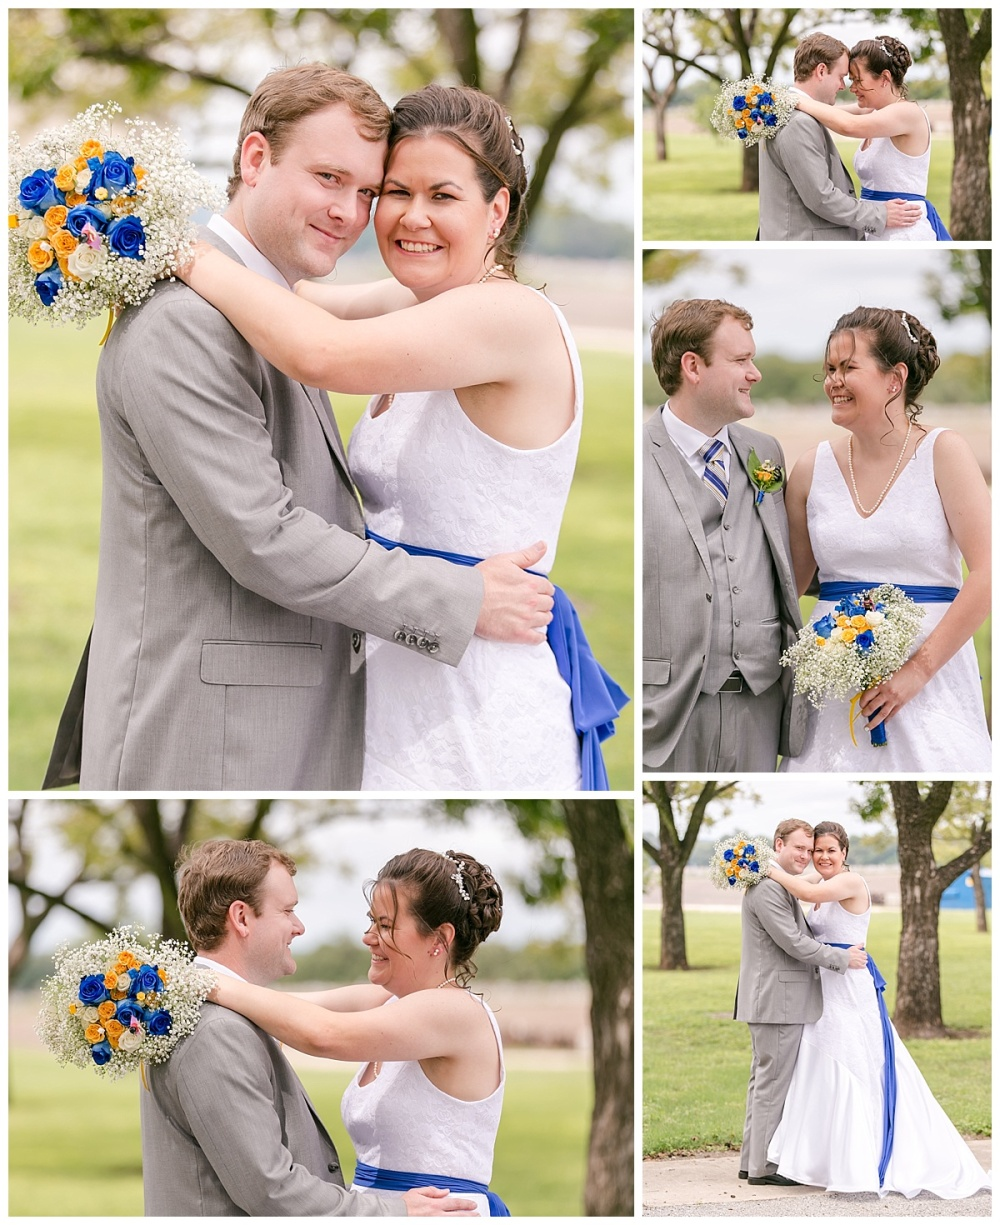 Texas-Wedding-Photographer-La-Coste-Our-Lady-Of-Grace-Church-Bride-Groom-Lego-Theme-Carly-Barton-Photography_0026.jpg